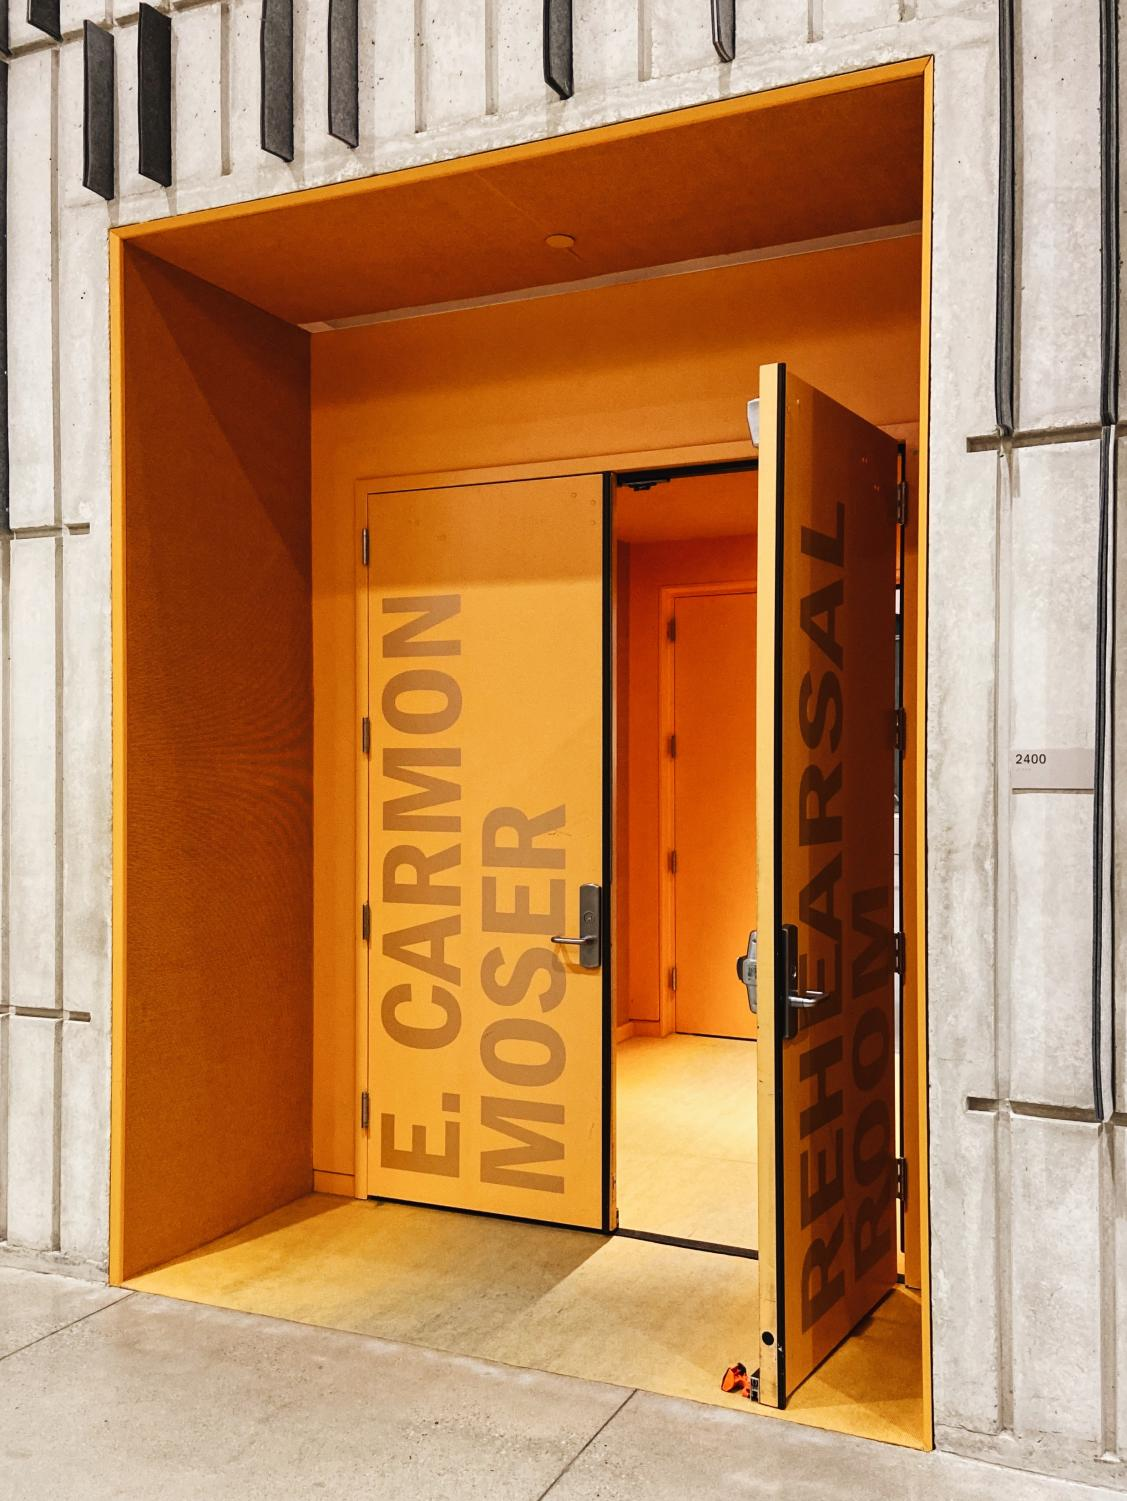 The+bright+orange+entrance+to+the+E.+Carmon+Rehearsal+Room+pops+against+the+Voxman%E2%80%99s+gray+walls.+Music+spills+into+the+hallway+as+several+college+students+practice+their+band+instruments.+%28framing%29%0A